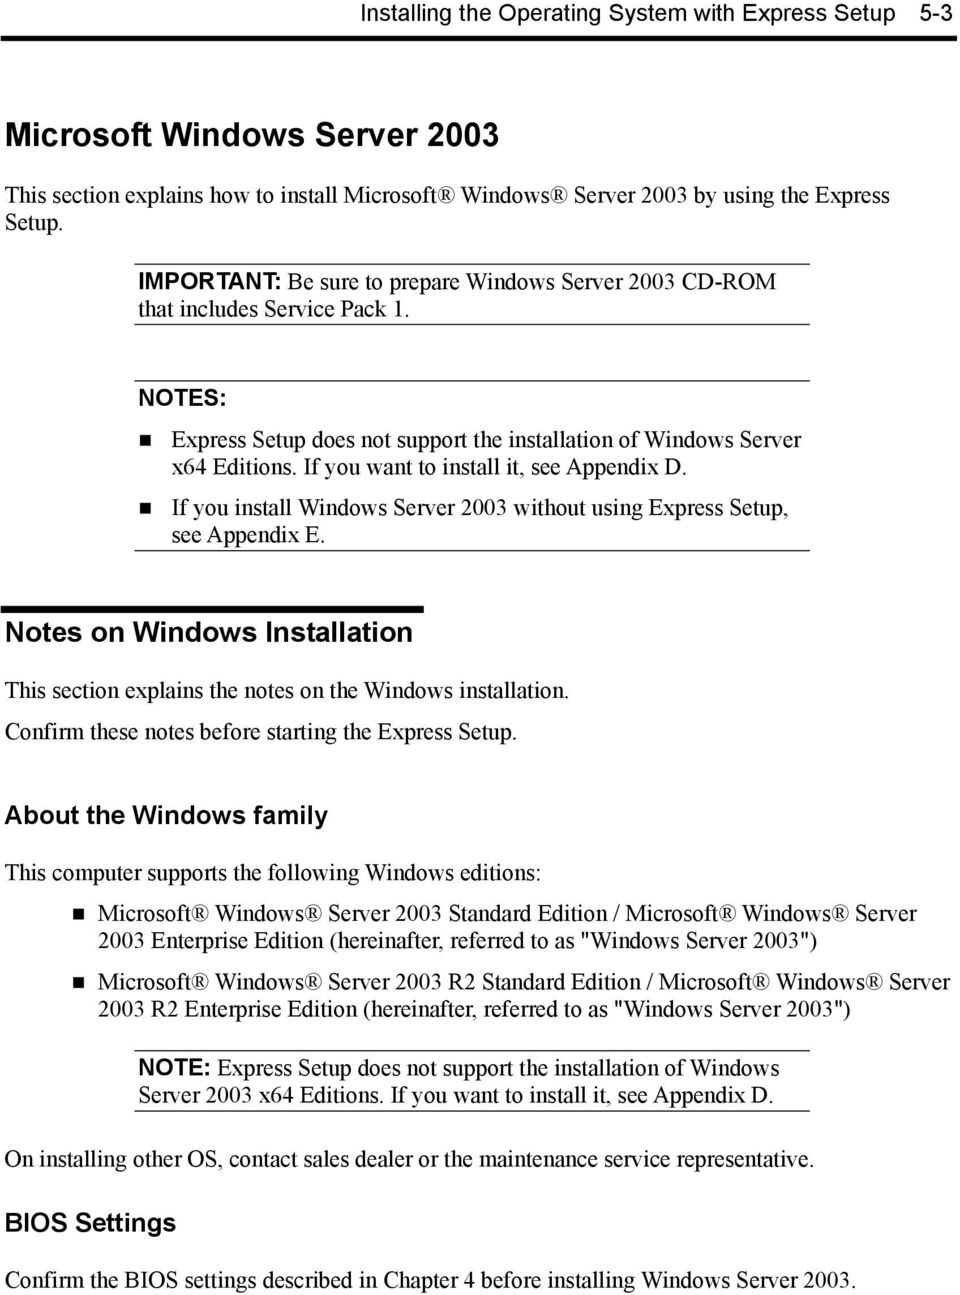 If you want to install it, see Appendix D. If you install Windows Server 2003 without using Express Setup, see Appendix E.